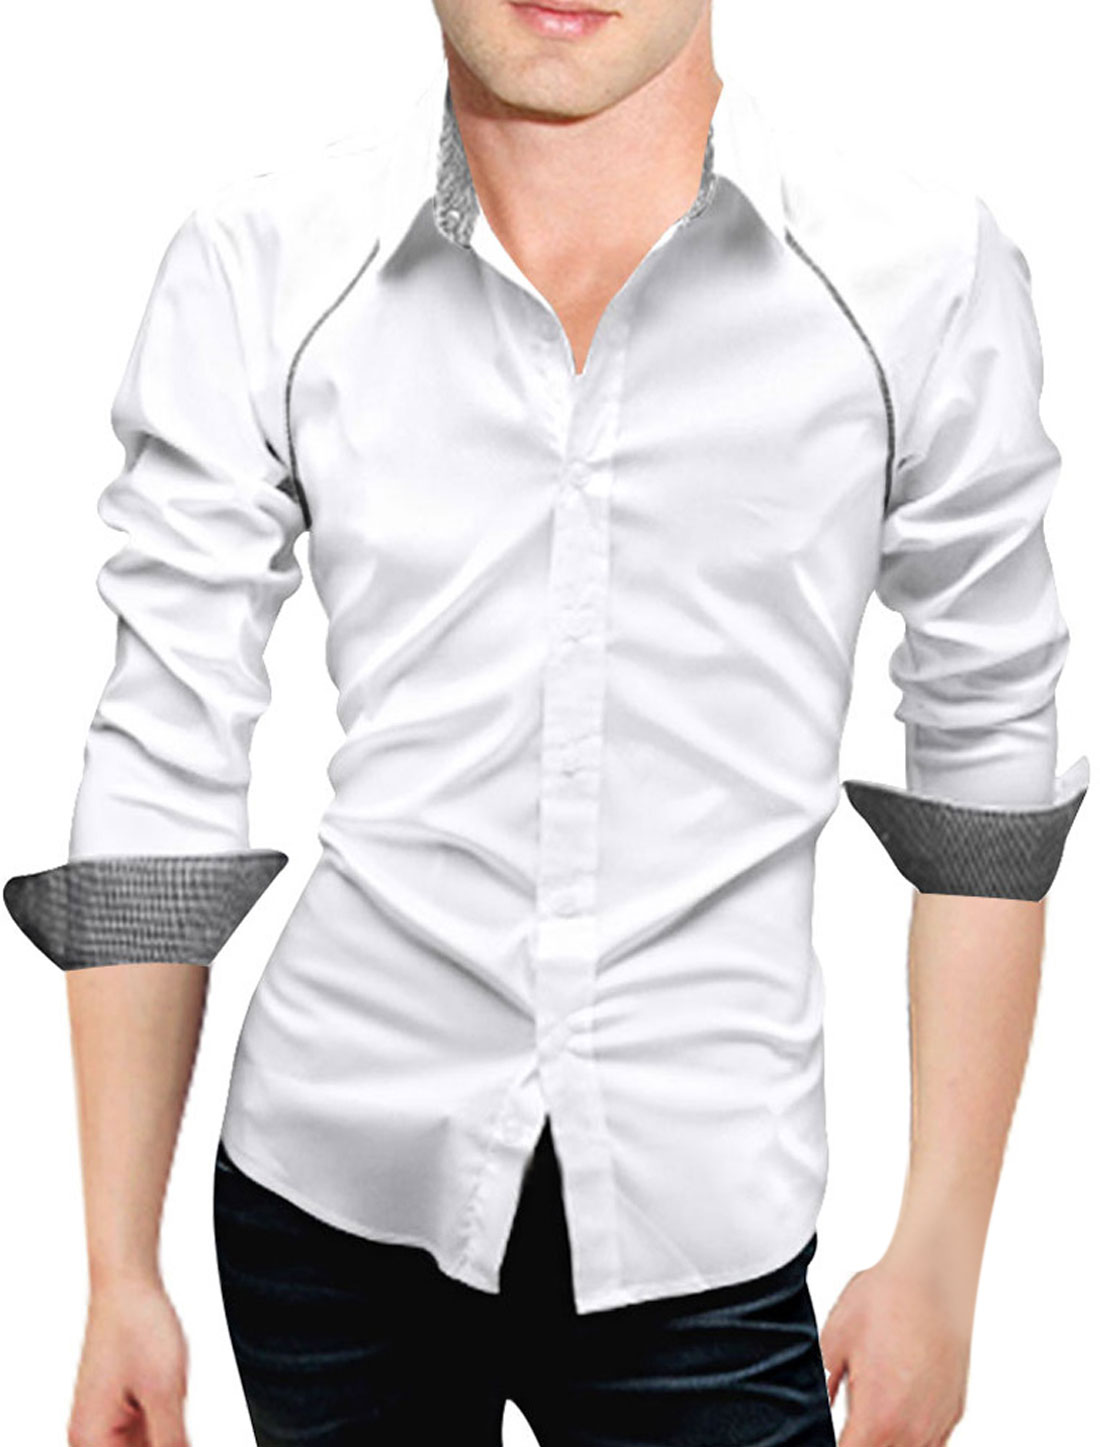 Men Fashion White Long Sleeve Single Breasted Buttoned Cuffs Leisure Shirt M